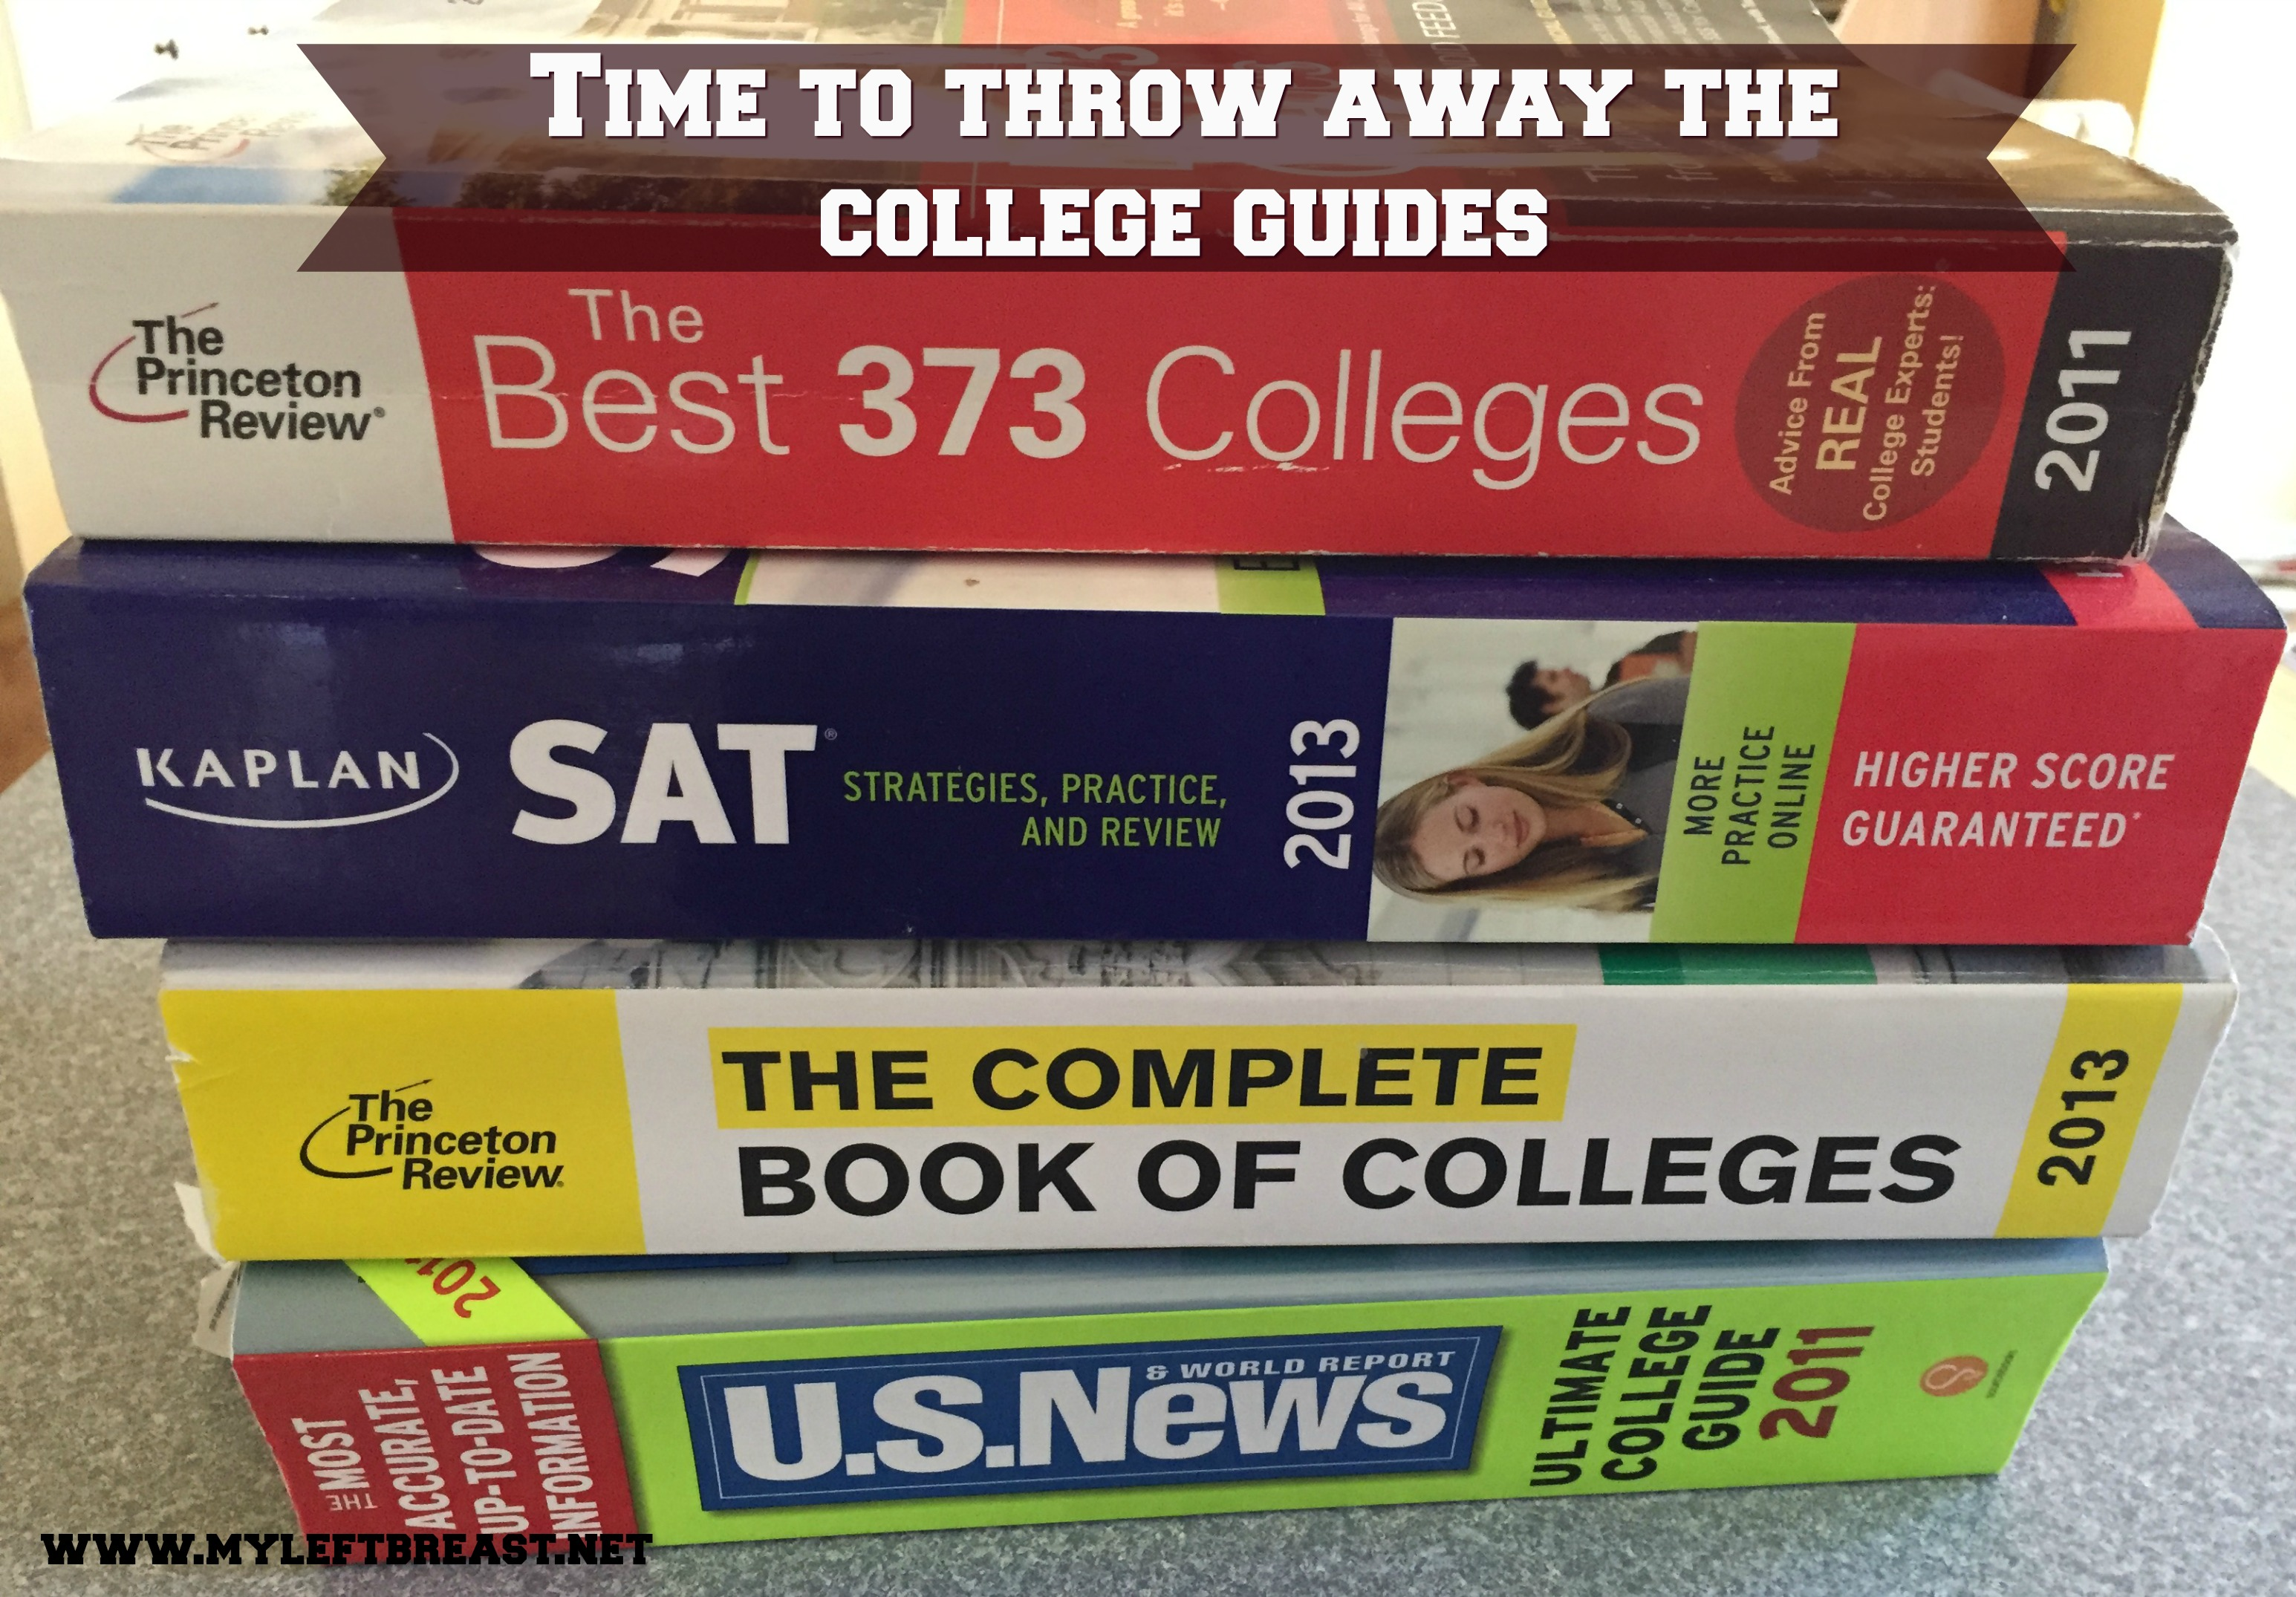 Time To Throw Away the College Guides